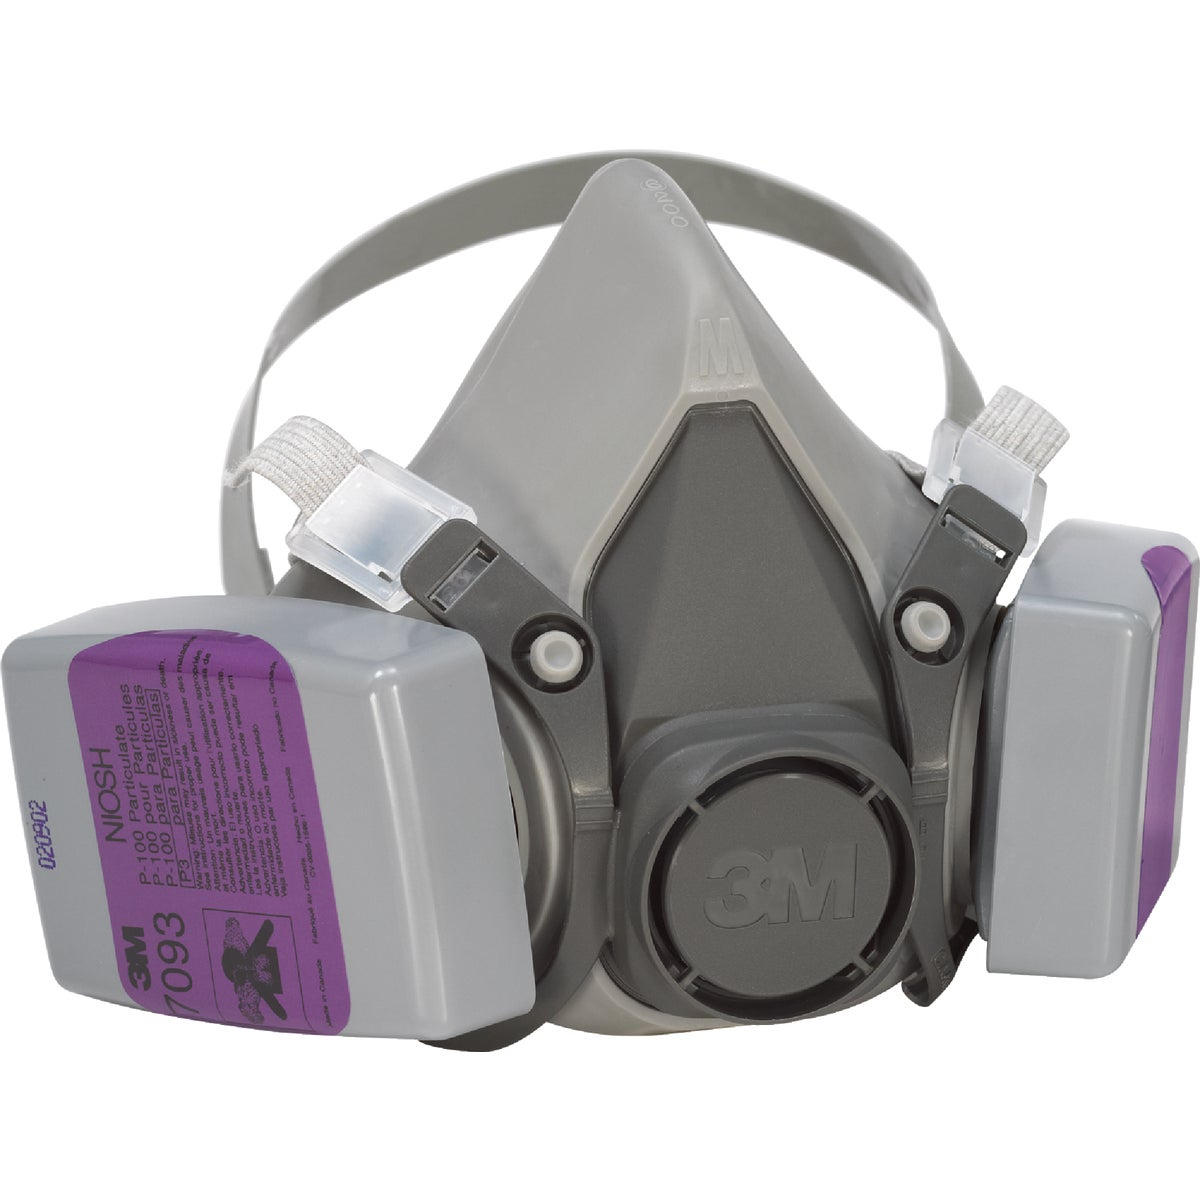 DEMOLITION RESPIRATOR - 62093HA1-C by 3m Co